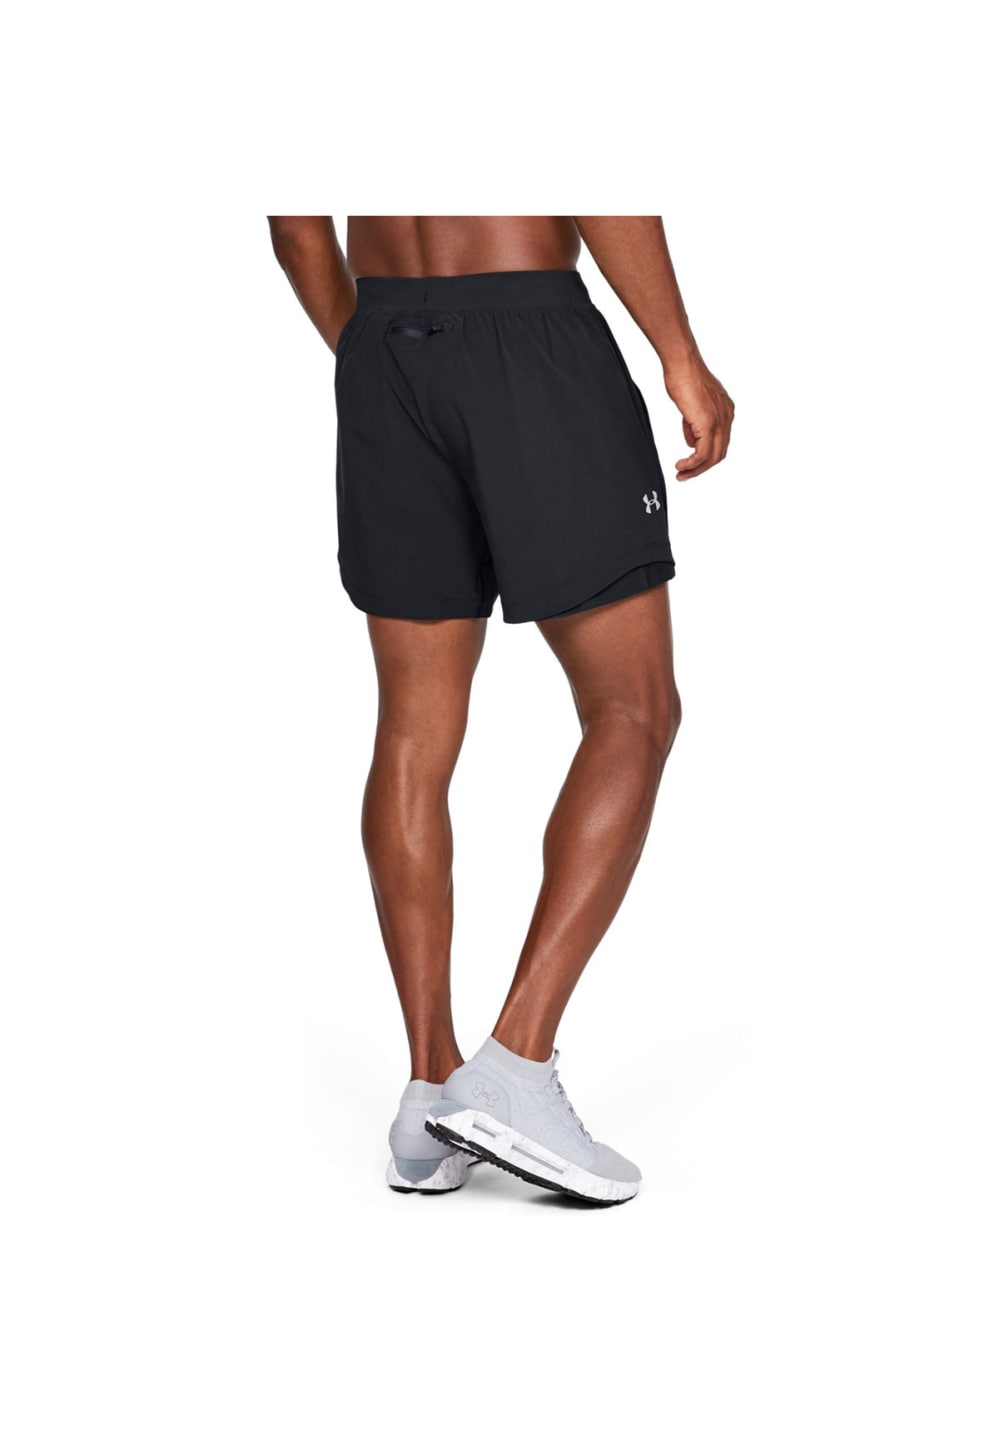 hot-selling clearance online retailer entire collection Under Armour Speedpocket Linerless 7'' Short - Running trousers for Men -  Black